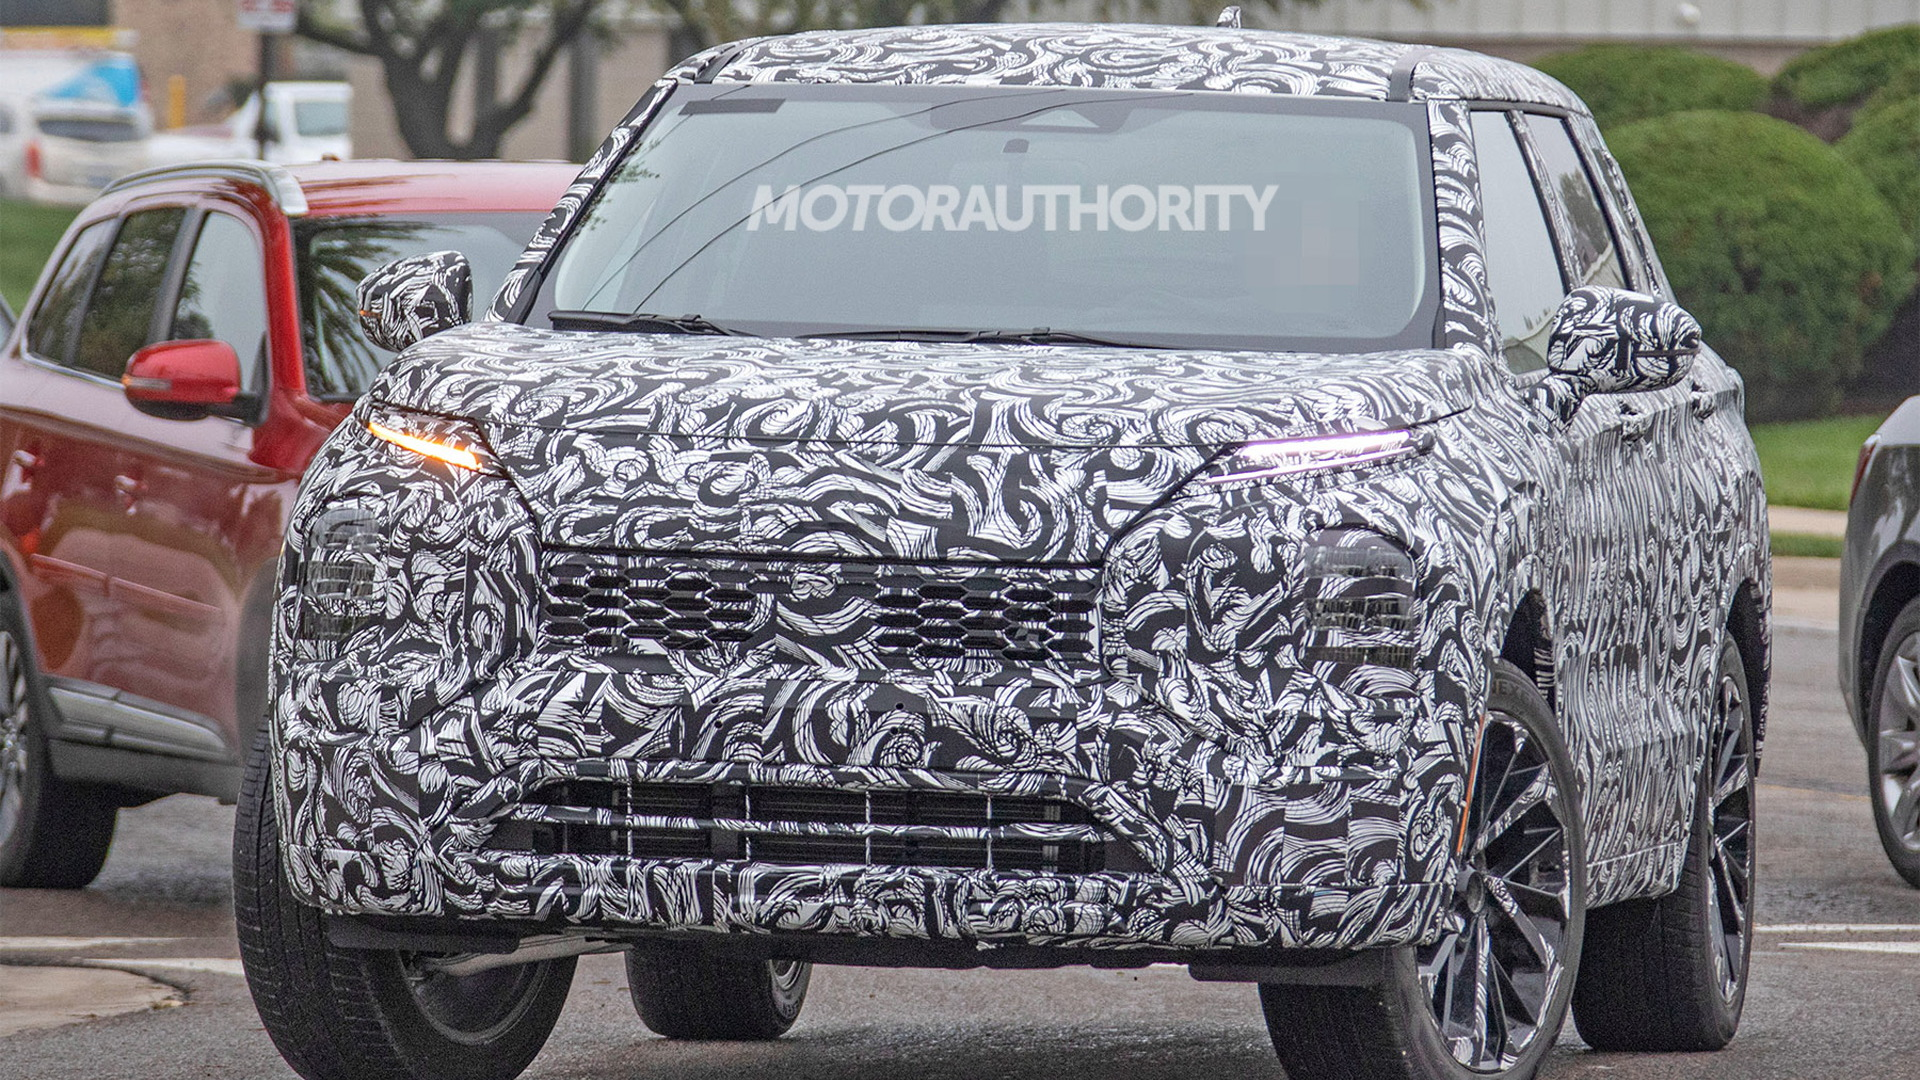 2022 Mitsubishi Outlander spy shots - Photo credit: S. Baldauf/SB-Medien